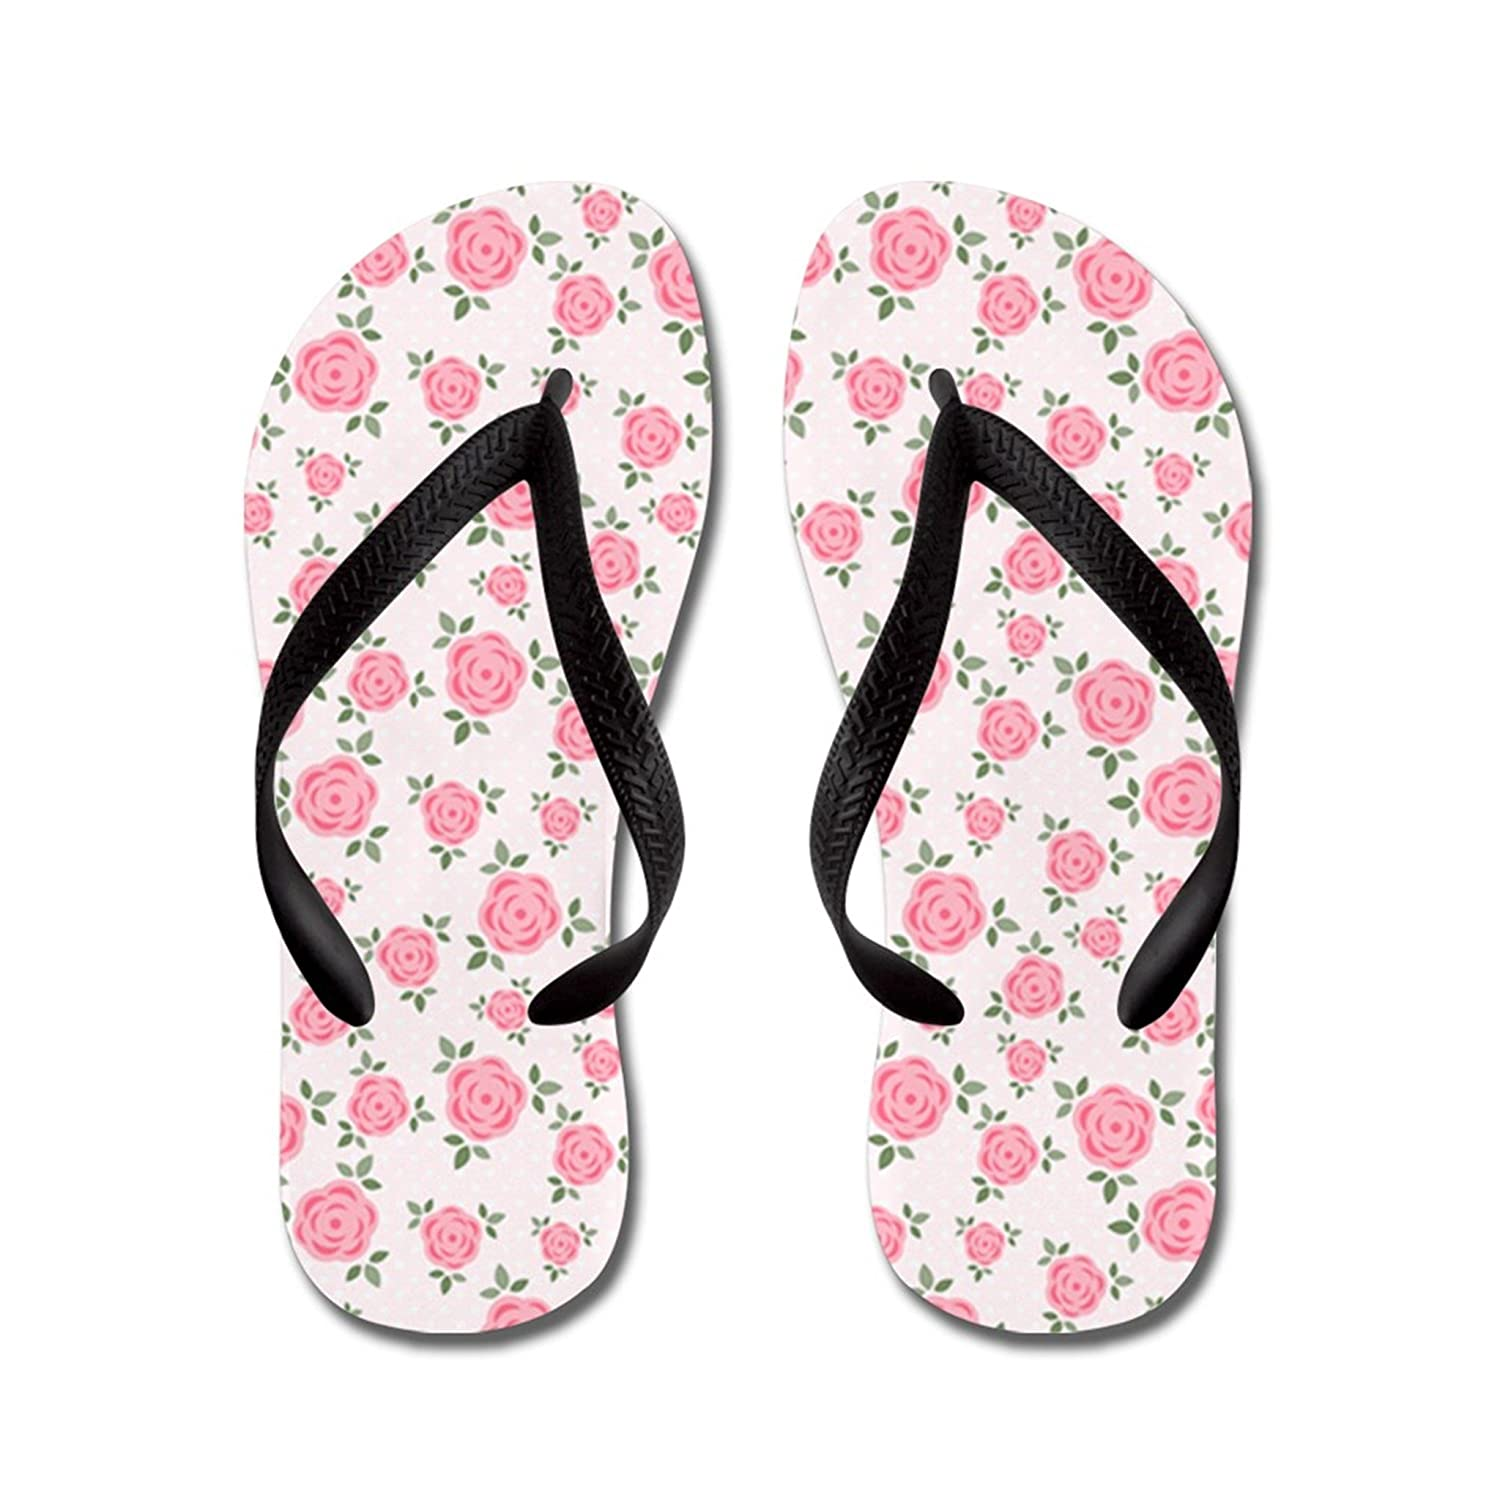 Lplpol Pretty Pink Flowers Pattern Flip Flops for Kids and Adult Unisex Beach Sandals Pool Shoes Party Slippers